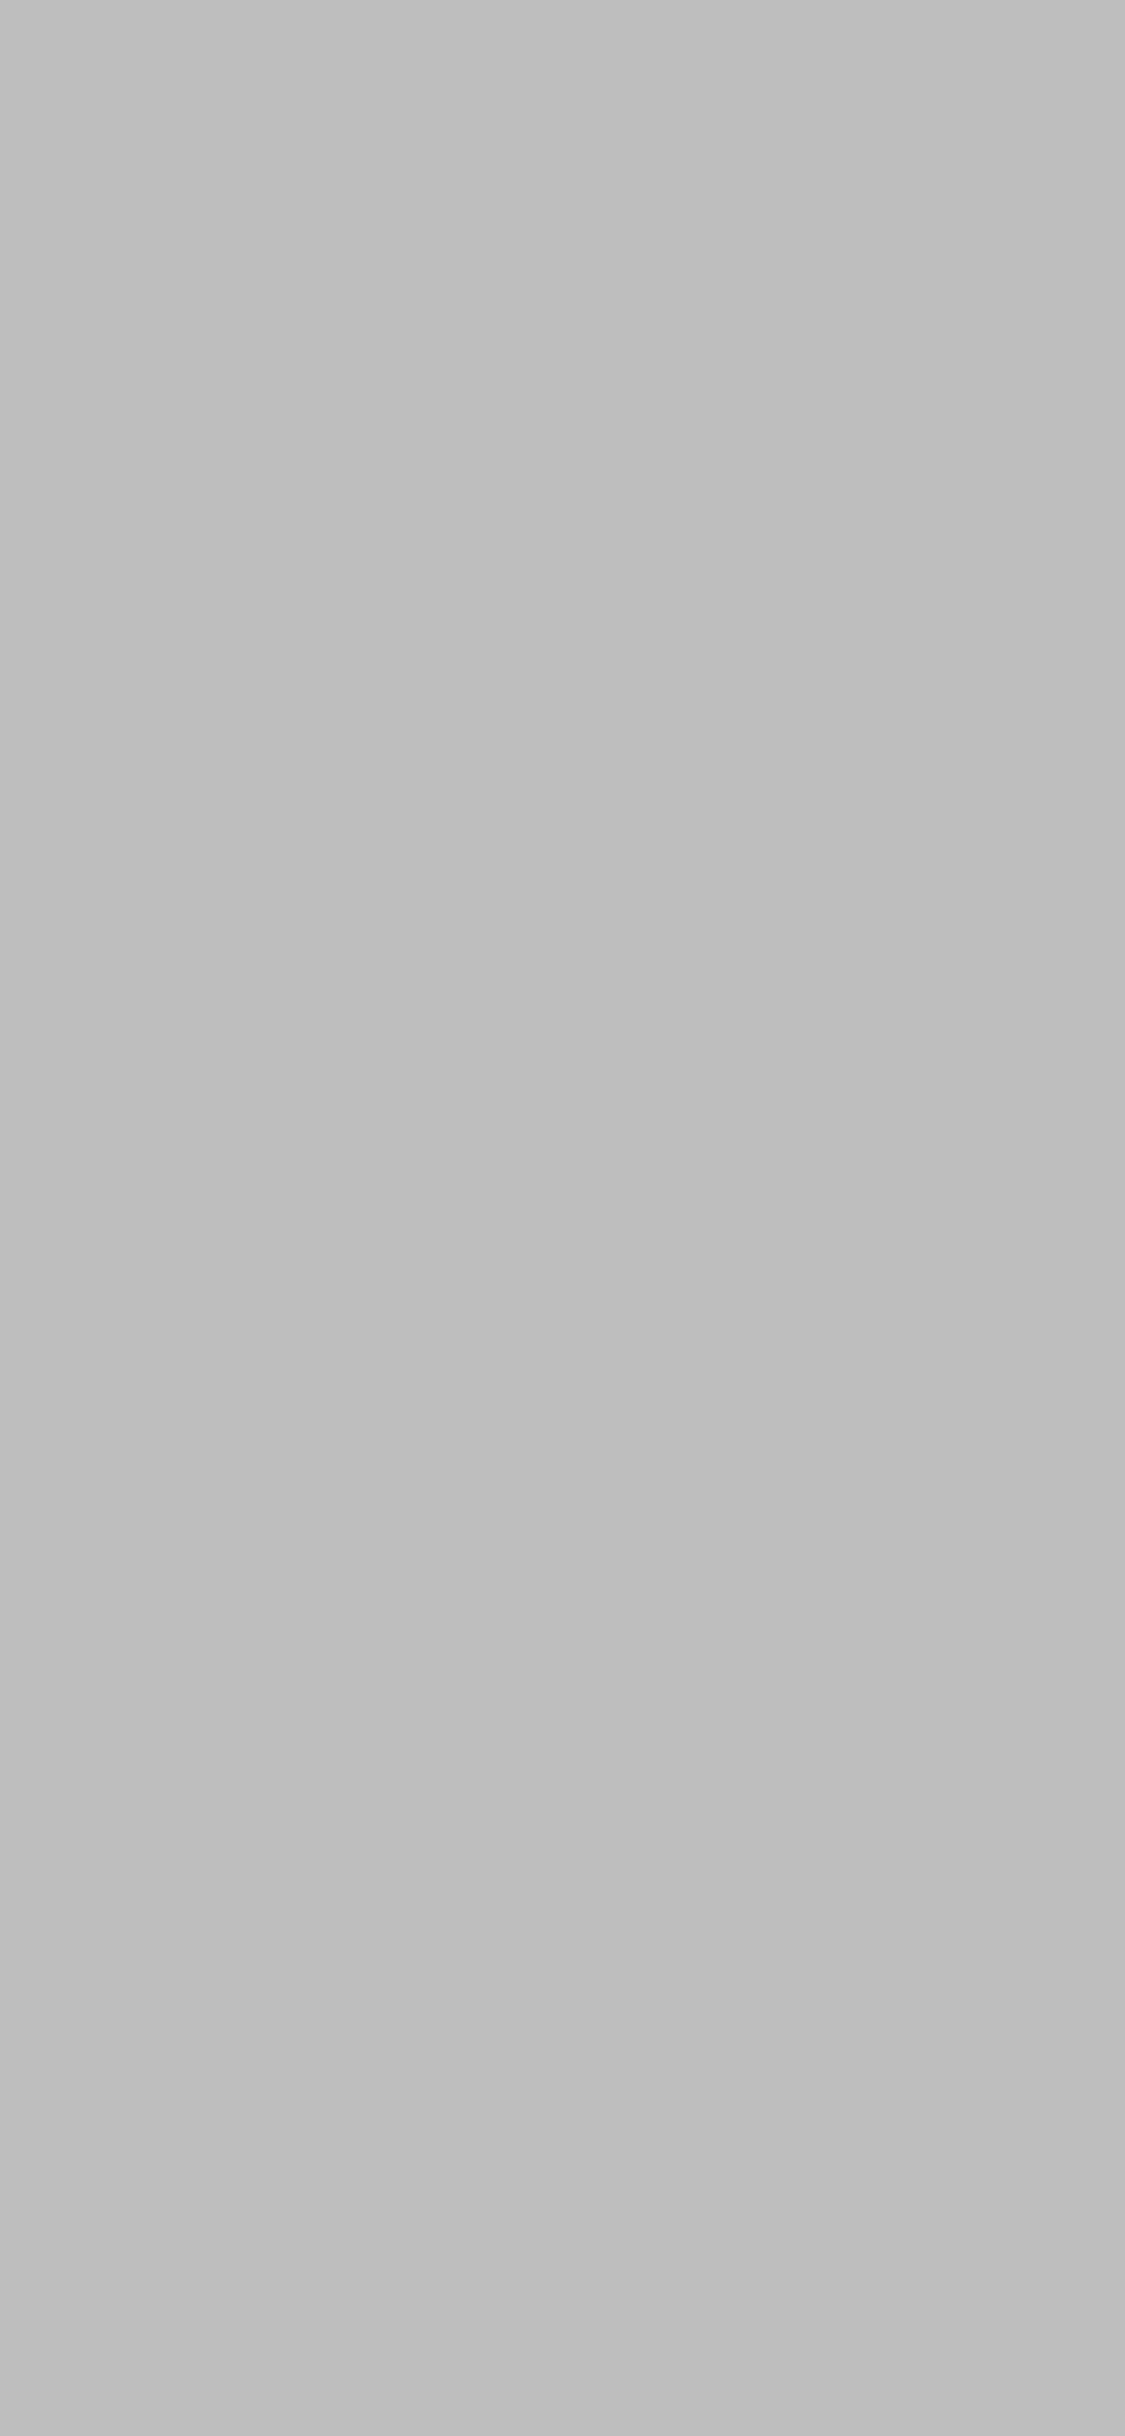 1125x2436 Gray X11 Gui Gray Solid Color Background